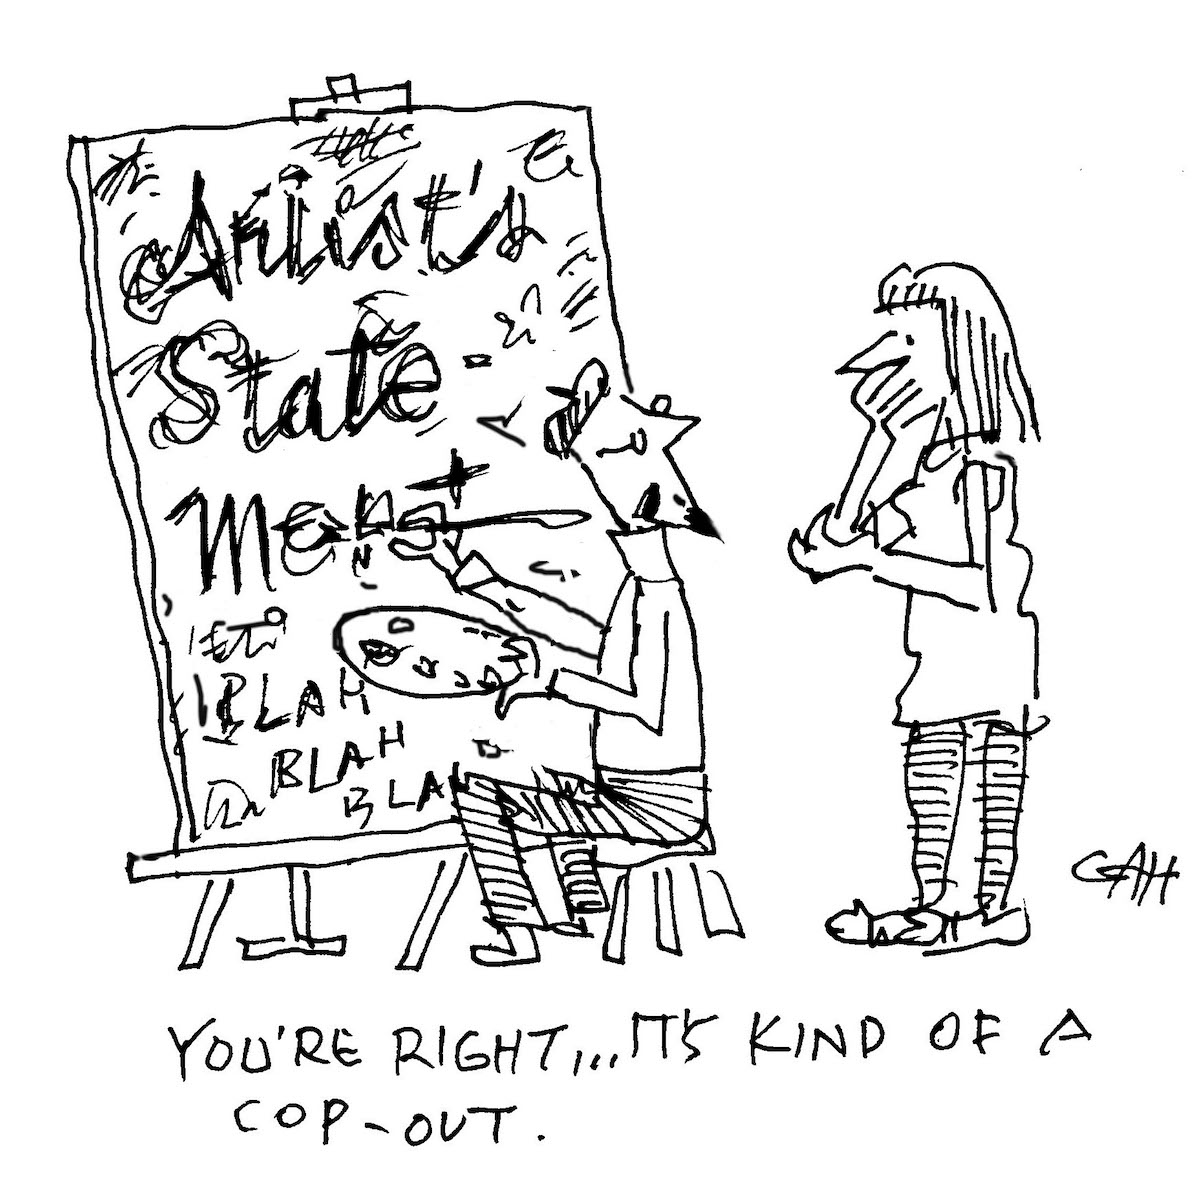 Artist Statement Satirical Cartoon | Tips for Your First Art Exhibit | Artist Statement | Artist Network | Dean Nimmer